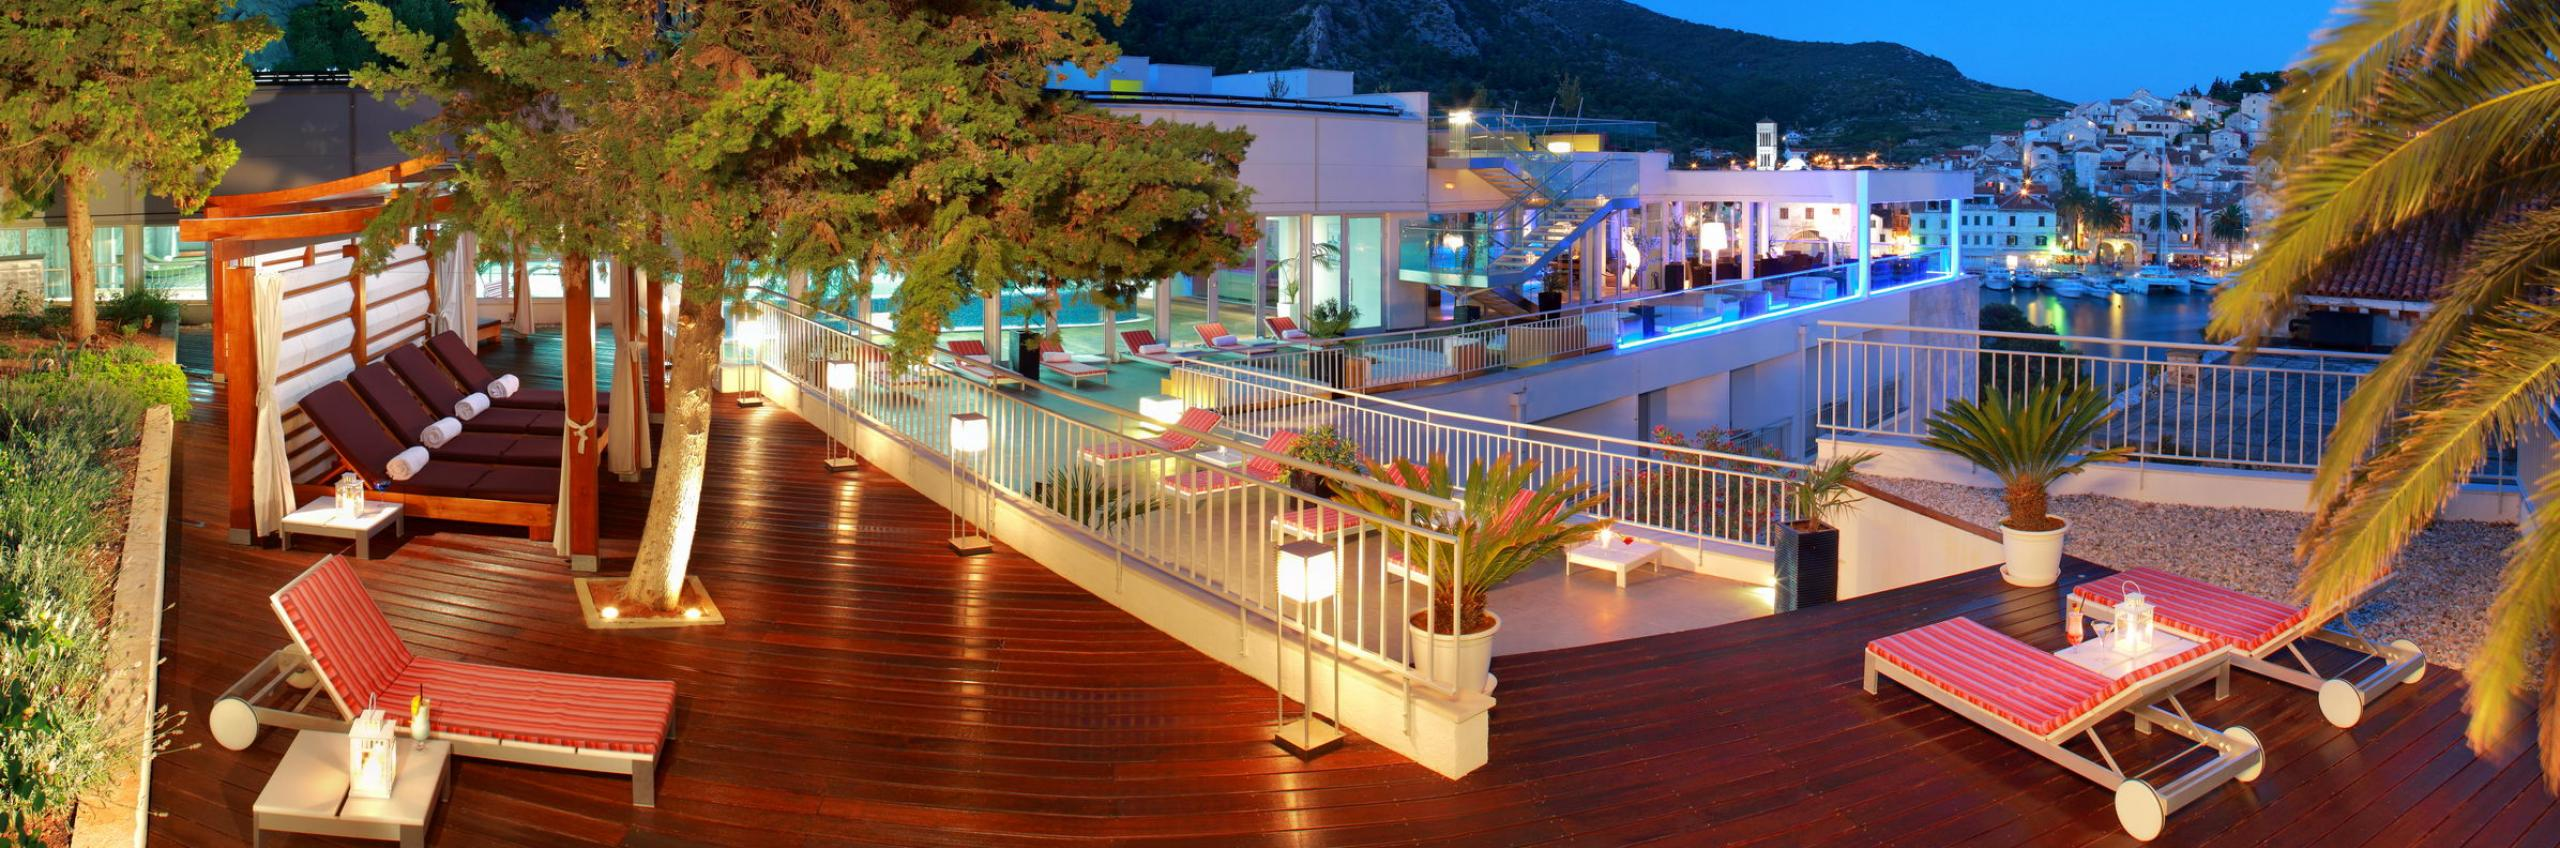 Hvar S Award Winning Boutique Hotel And Spa